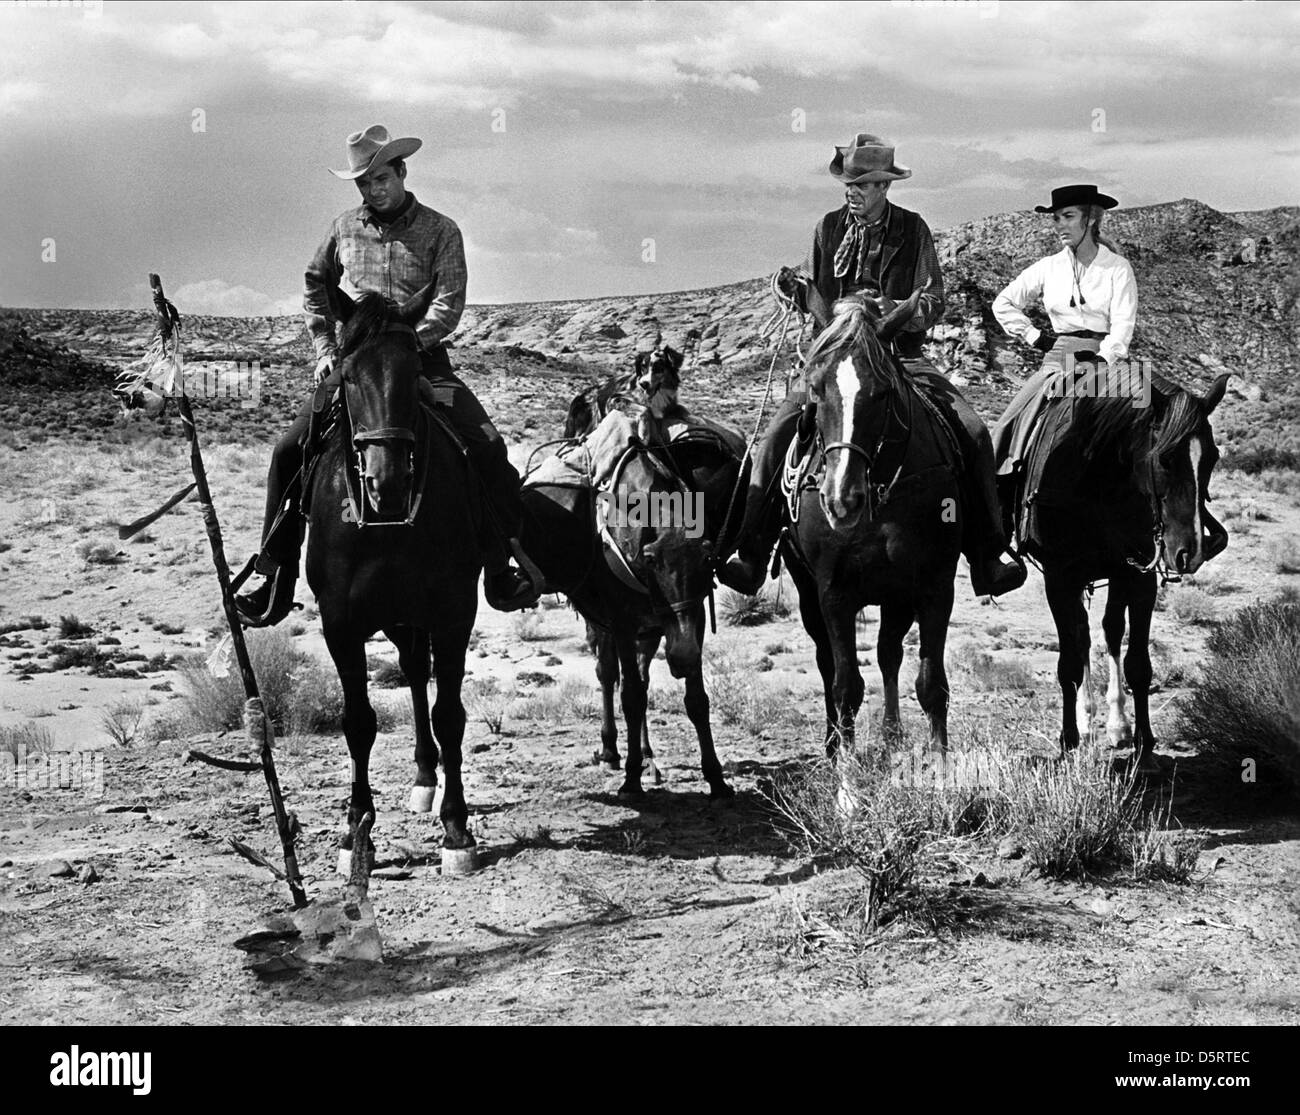 Audie Murphy Dan Duryea Amp Joan O Brien Six Black Horses